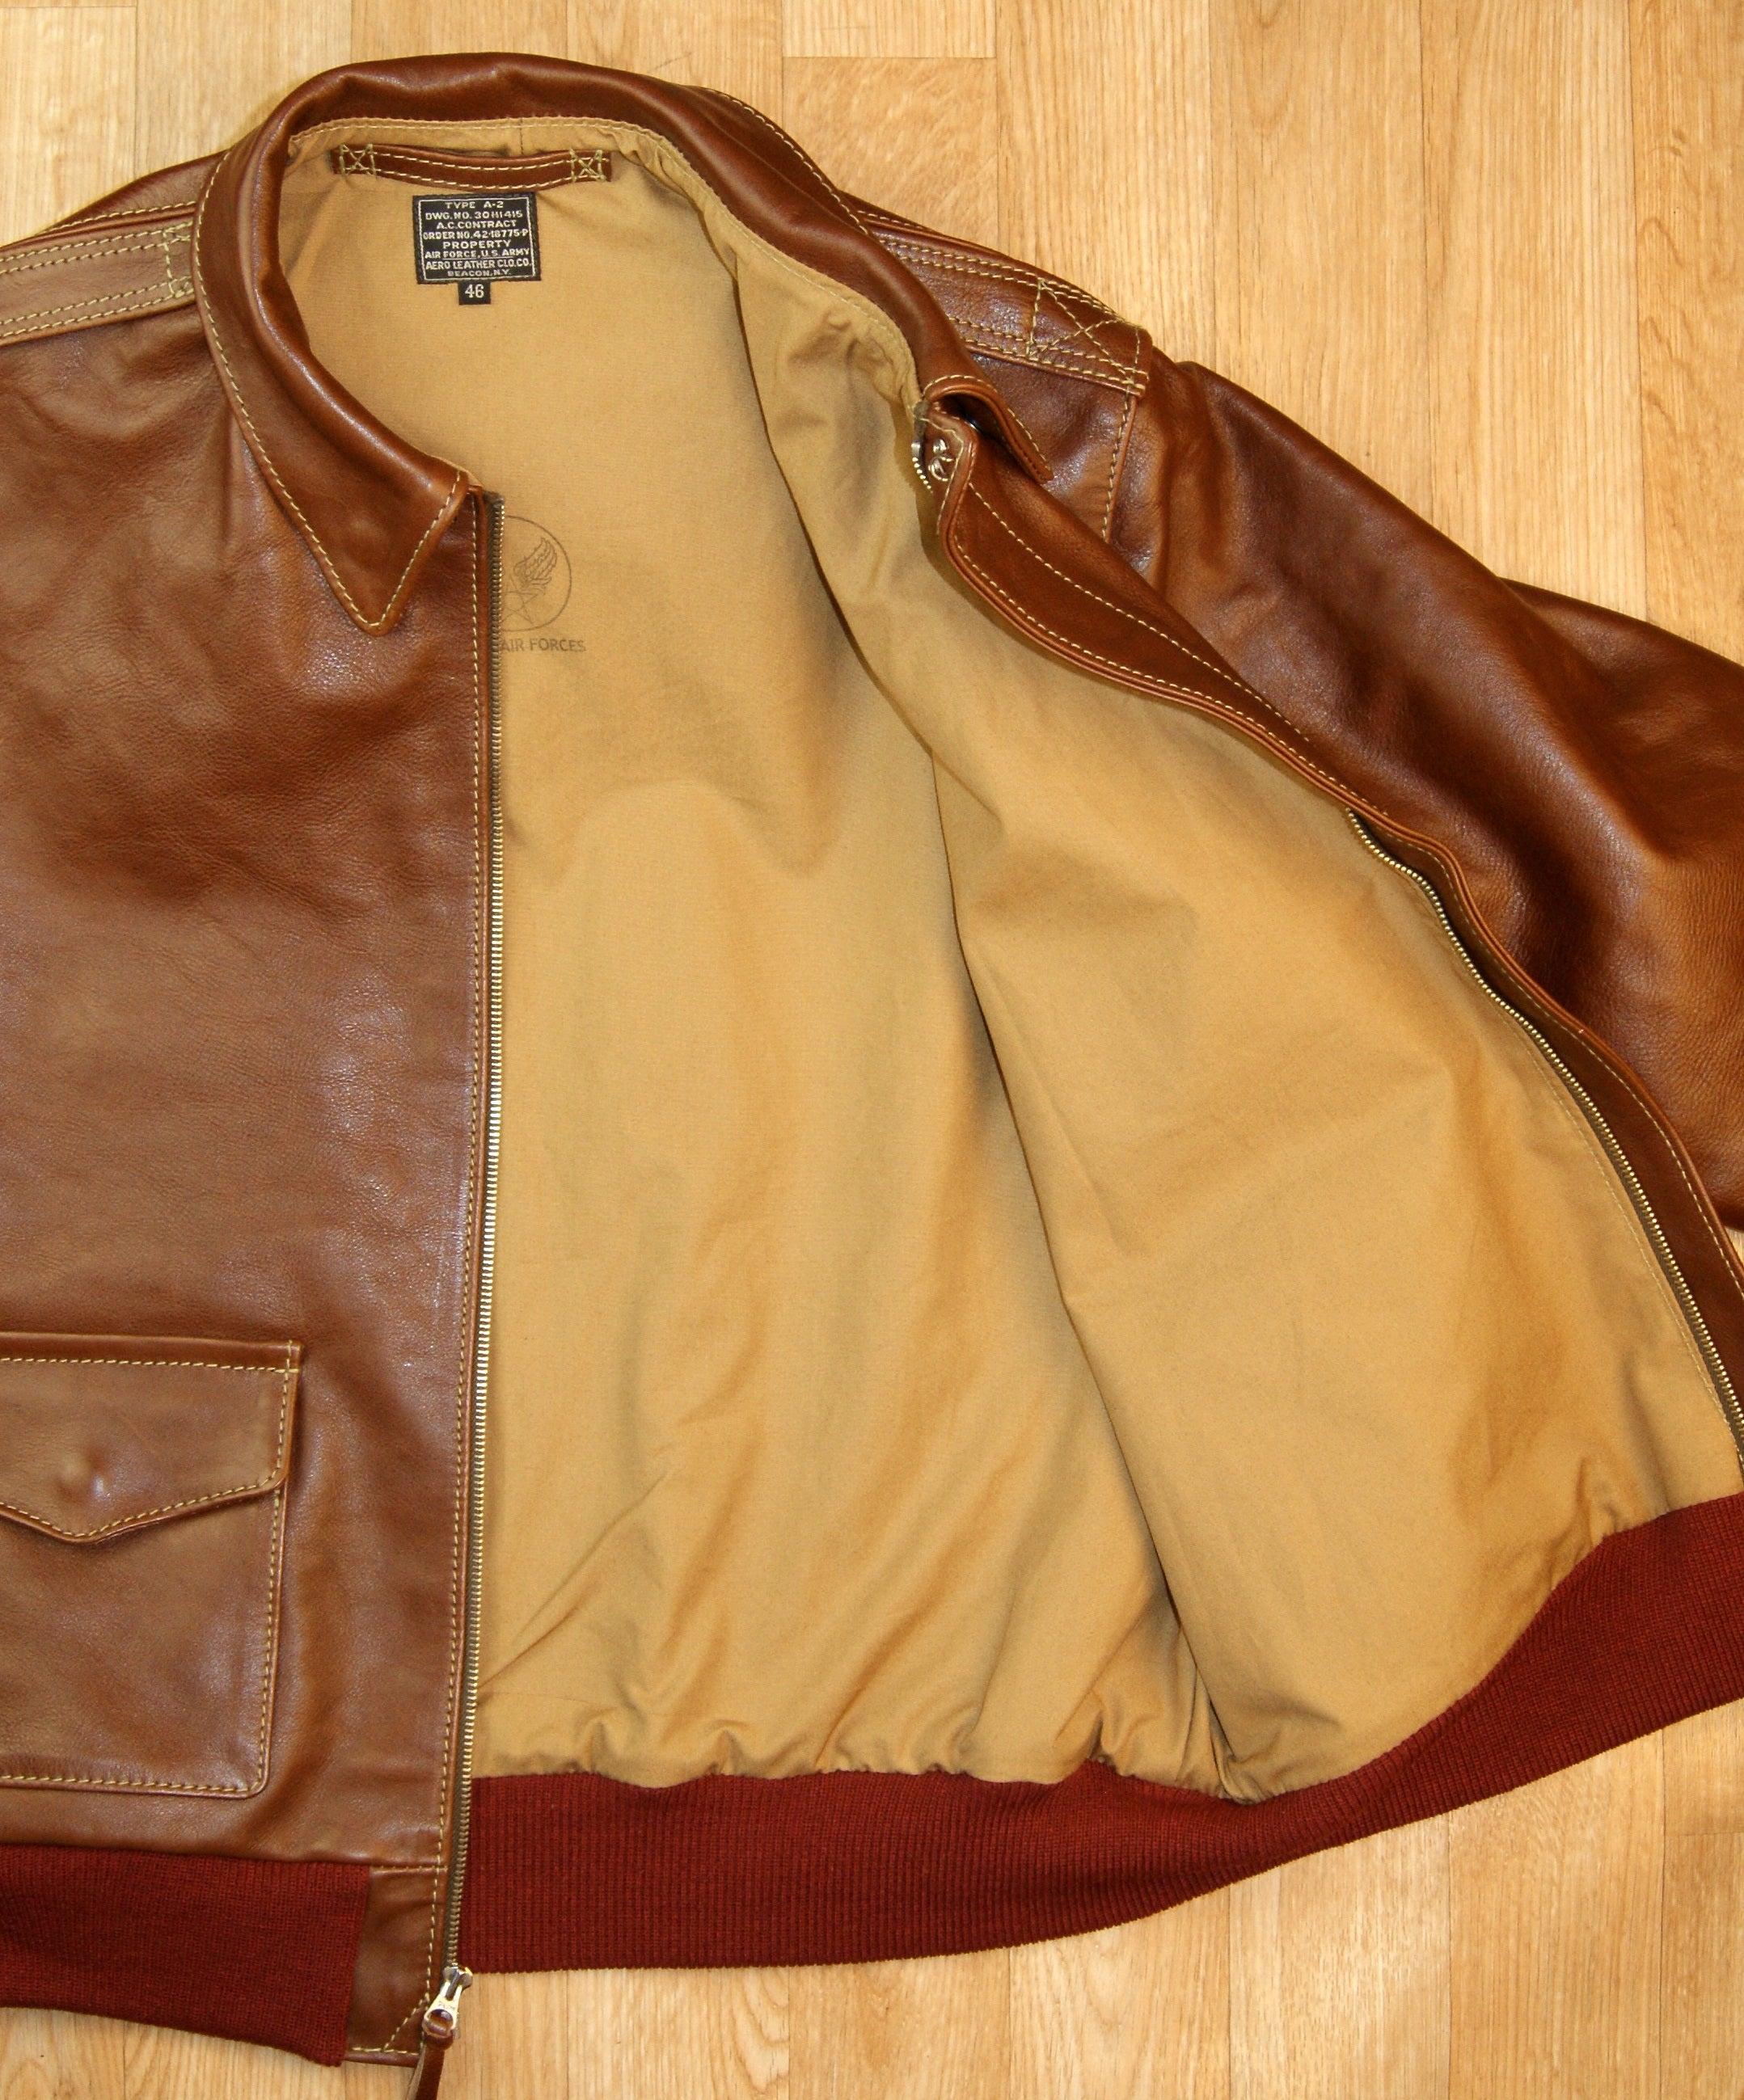 Aero A-2 Military Flight Jacket, size 46, Russet Vicenza Horsehide